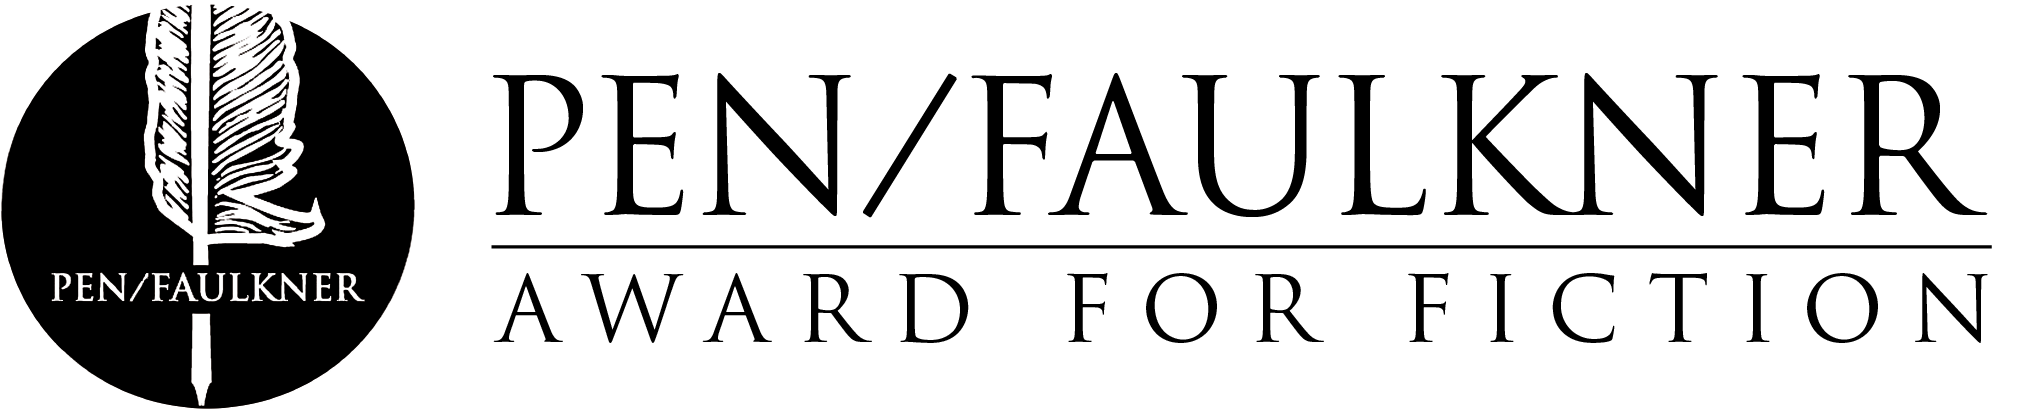 PEN/Faulkner Award for Fiction - logo and text